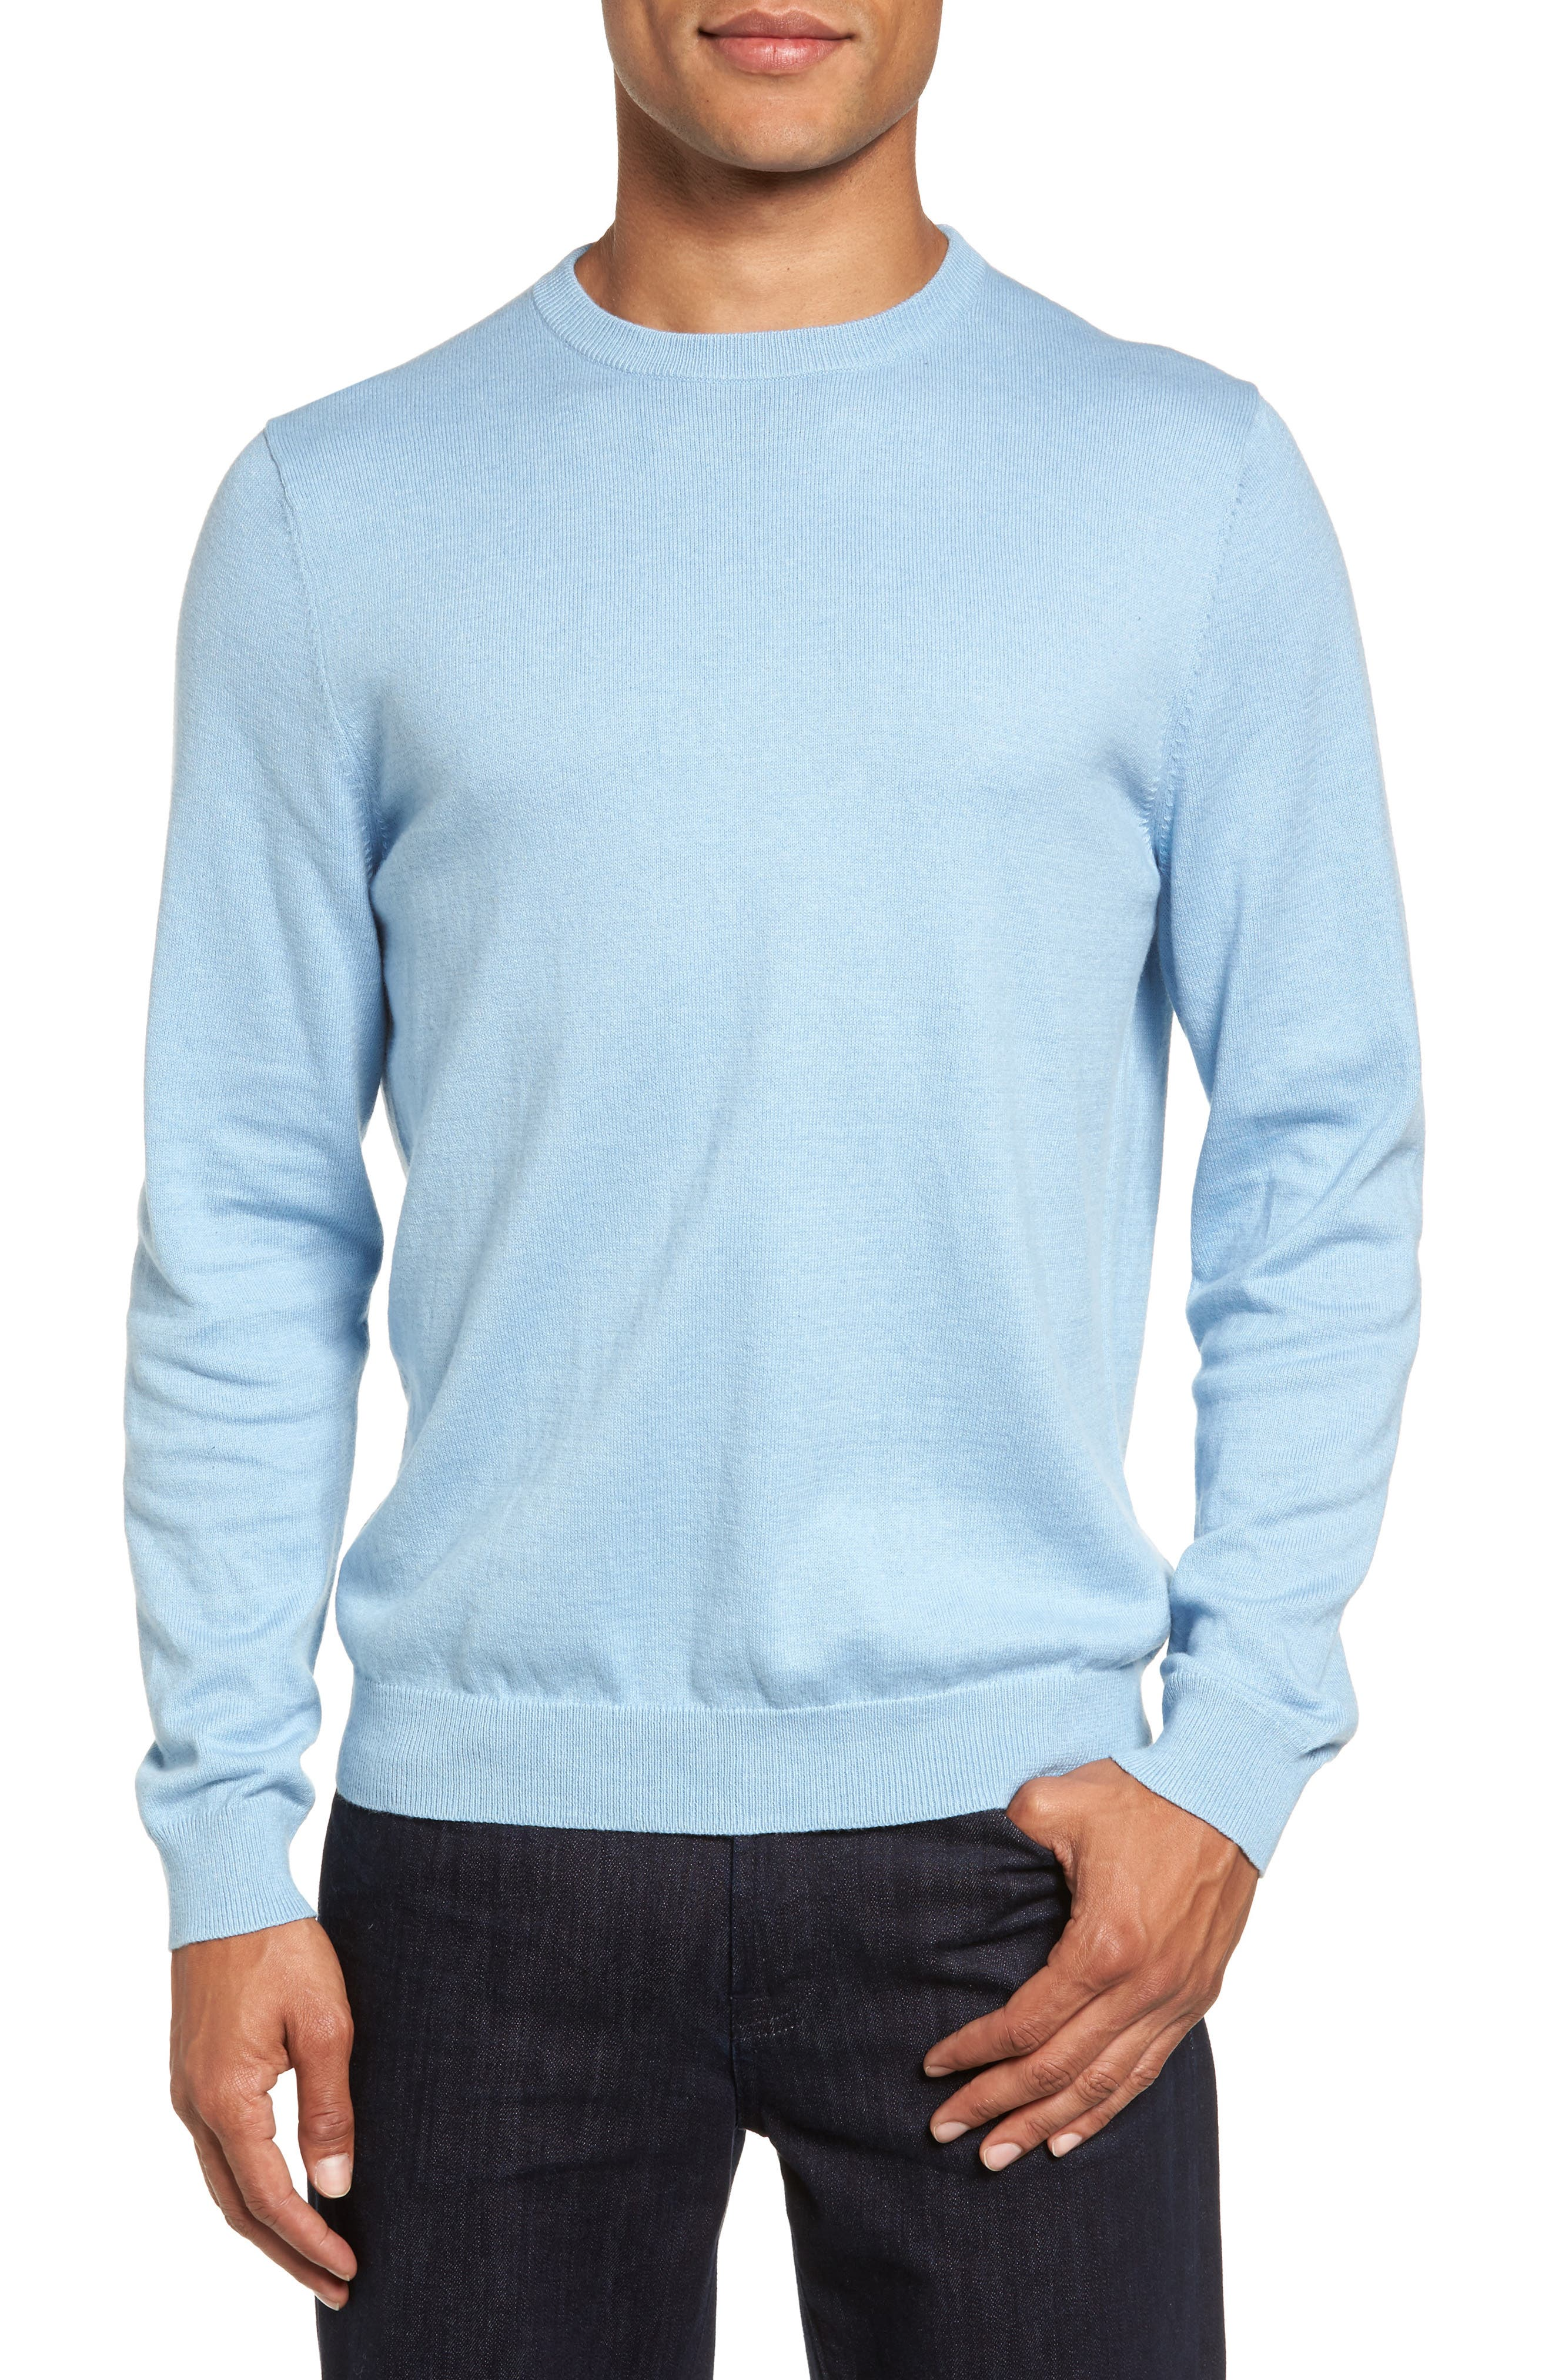 Clothing Shop Online has high quality, durable crewneck sweatshirts by respected brands like Hanes and Champion that will soon become go-to additions to your wardrobe all year round. With such a great selection available at affordable prices, Clothing Shop Online is the best place to buy discount men's crewneck sweatshirts online.